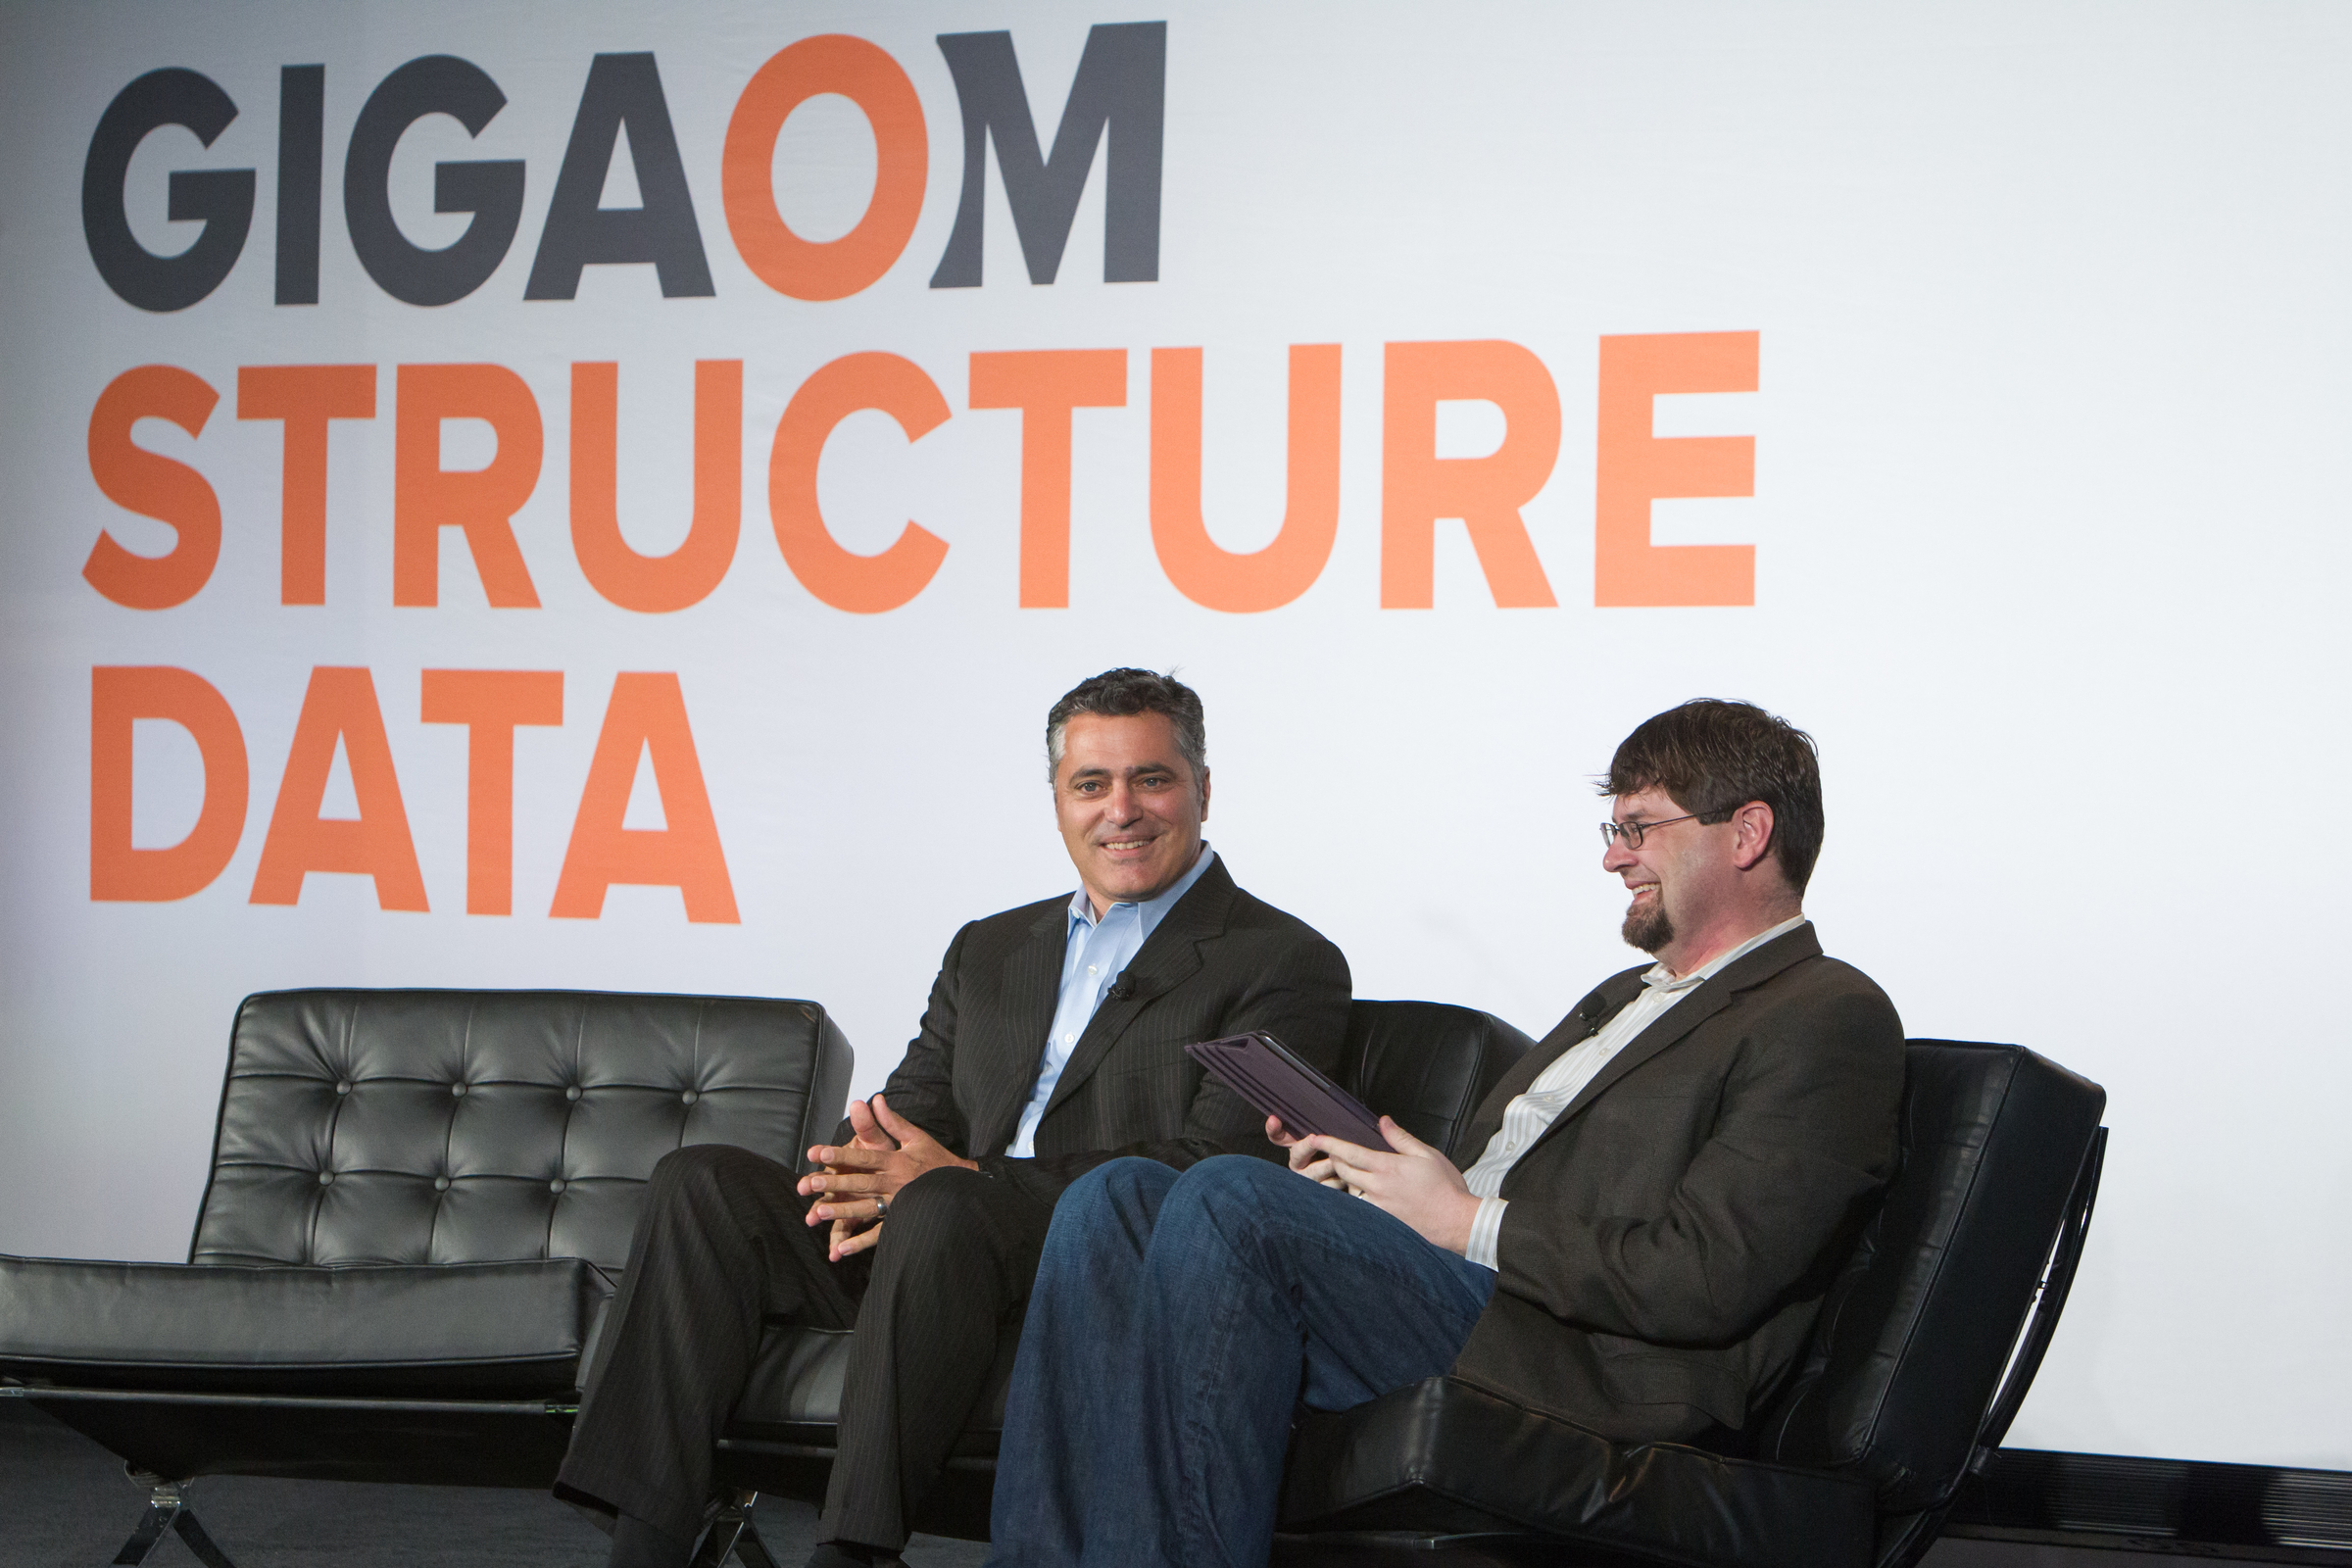 Tom Reilly (left) at Structure Data 2014. (c) Jakub Moser / http://jakubmosur.photoshelter.com